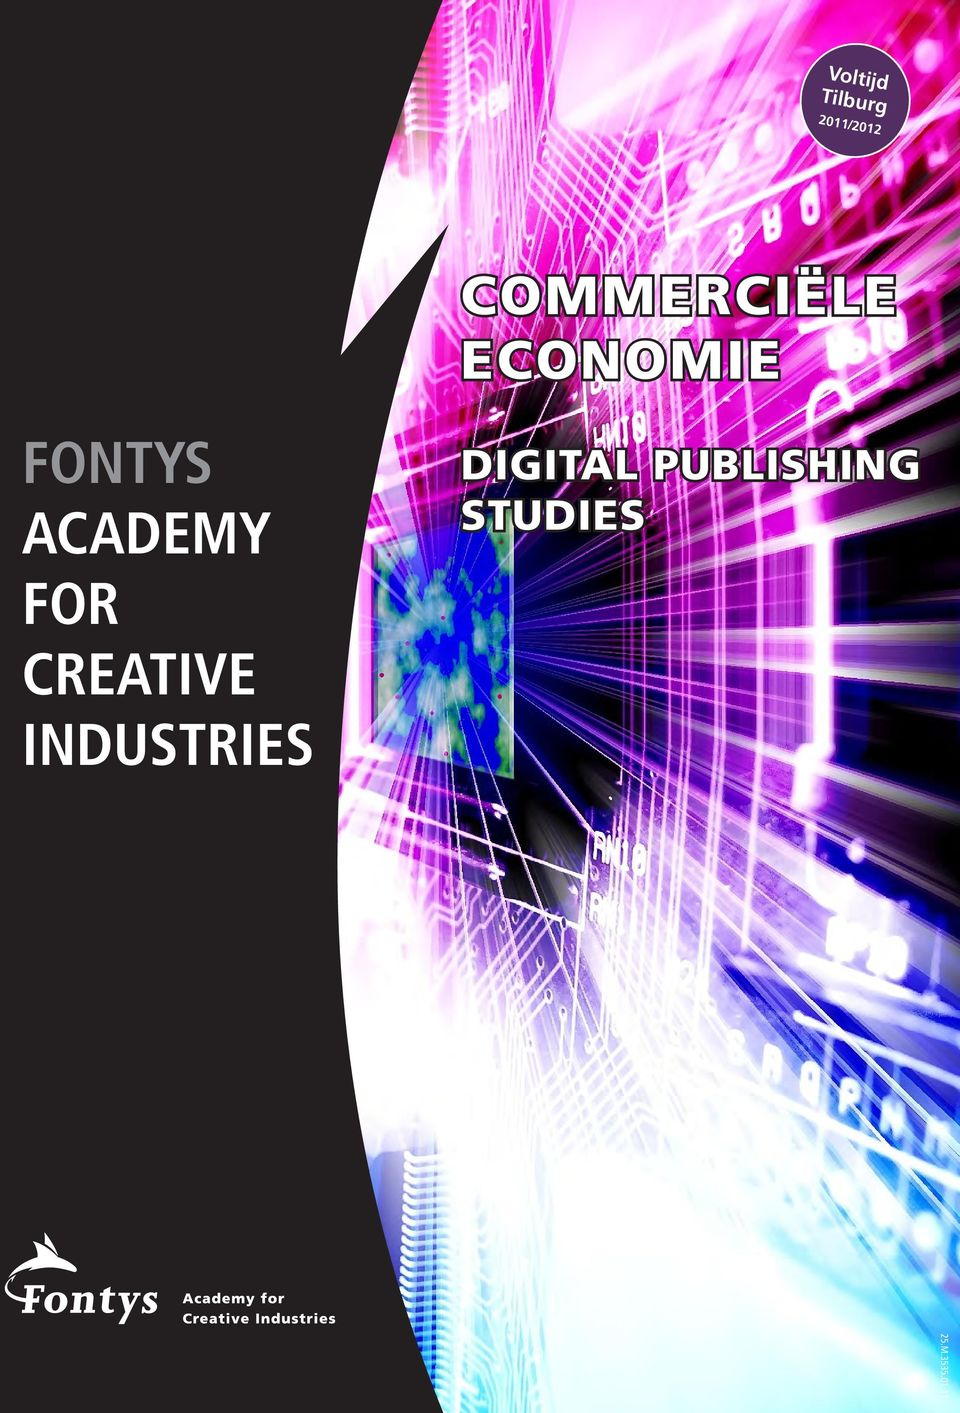 ACADEMY FOR CREATIVE INDUSTRIES